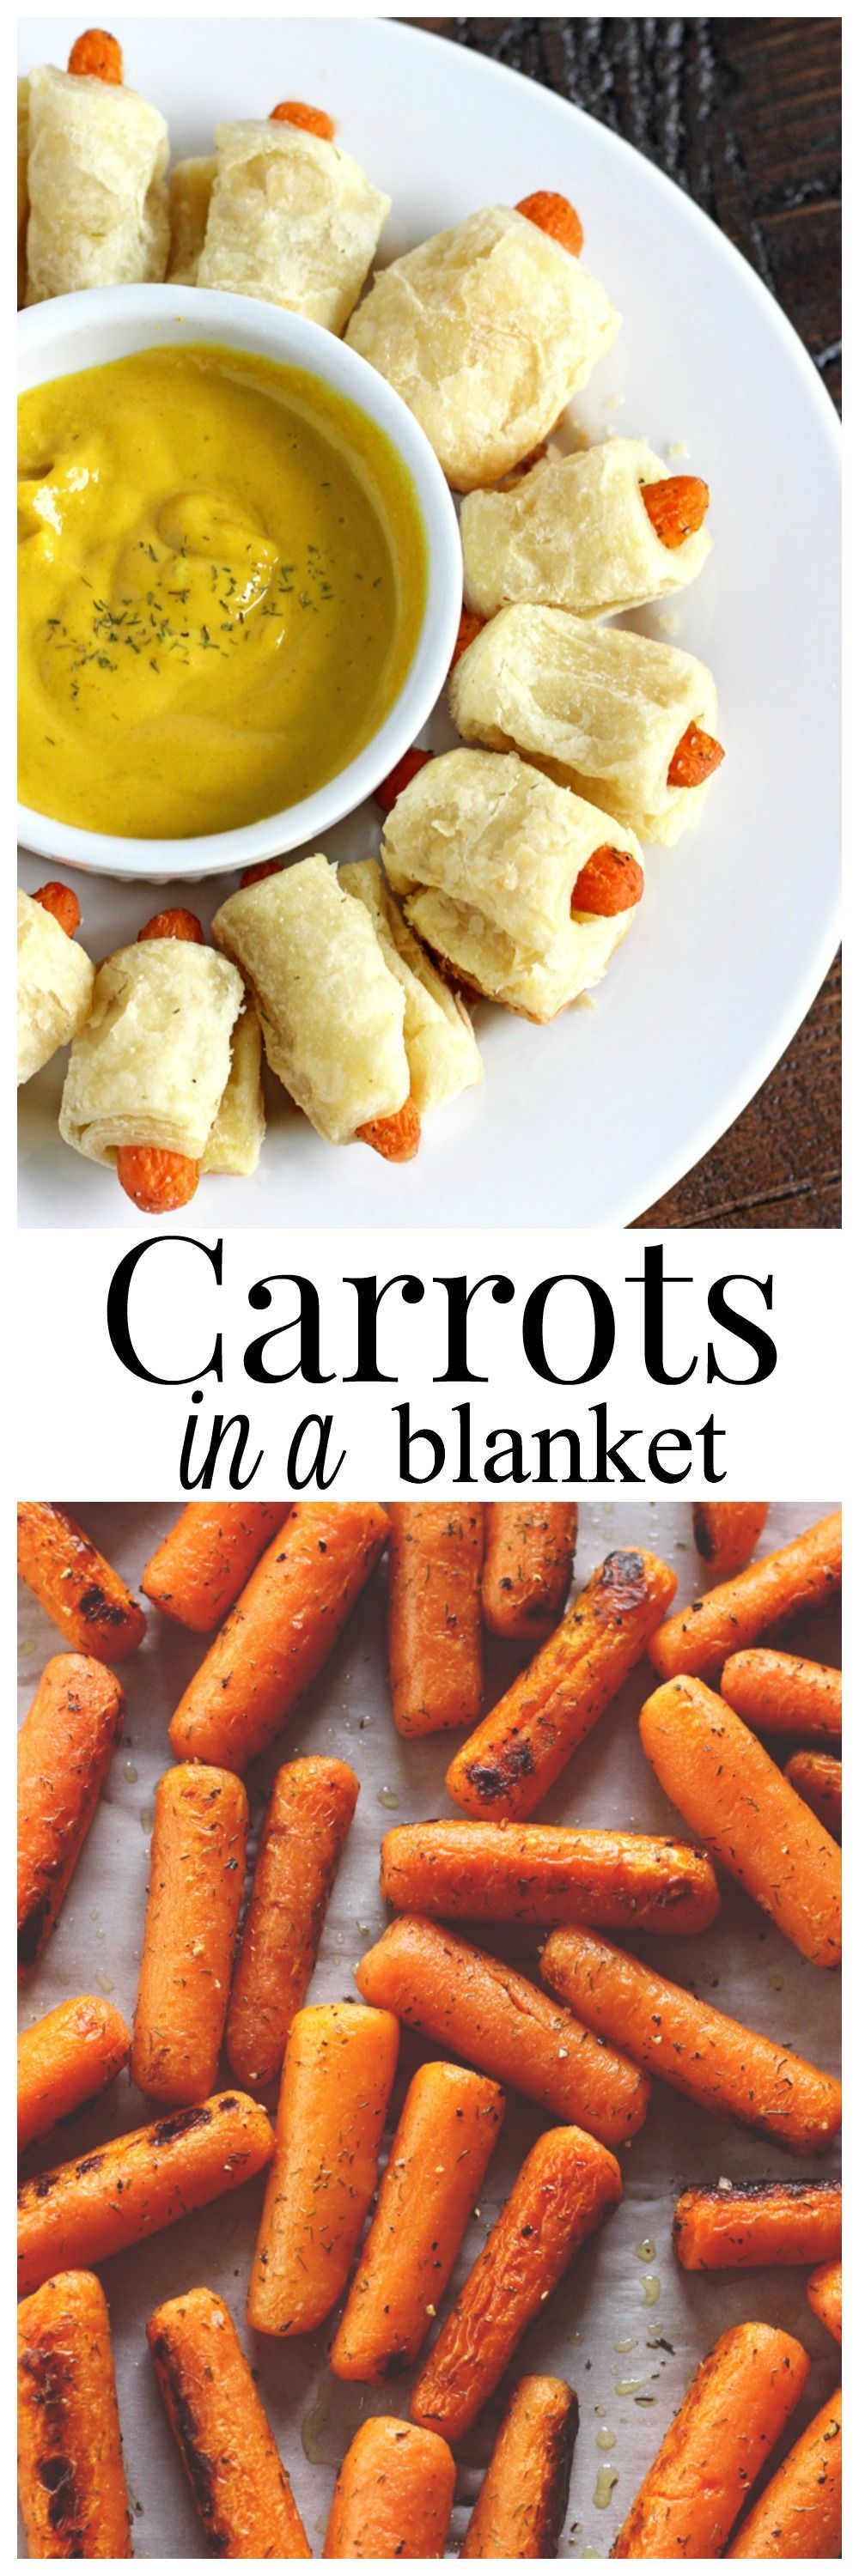 Carrots in a Blanket | NeuroticMommy